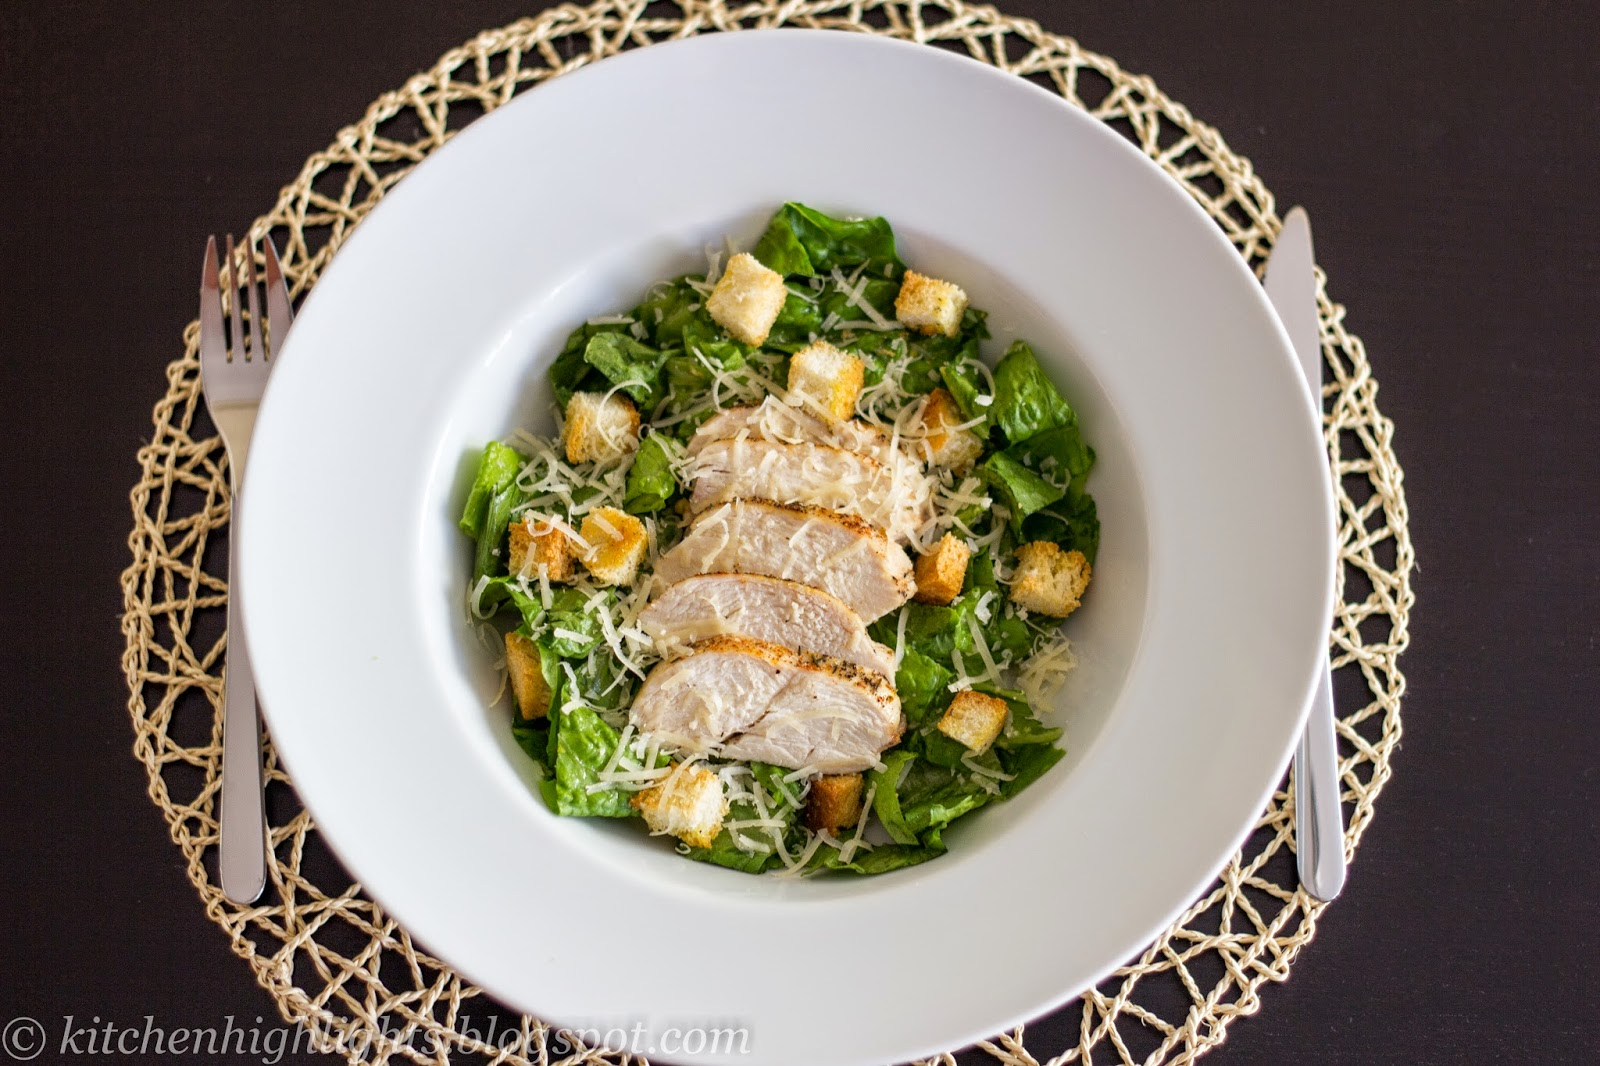 One of the most appreciated variants of Caesar salad adds just one ingredient: grilled or baked chicken breast, for a satisfying and yet light meal